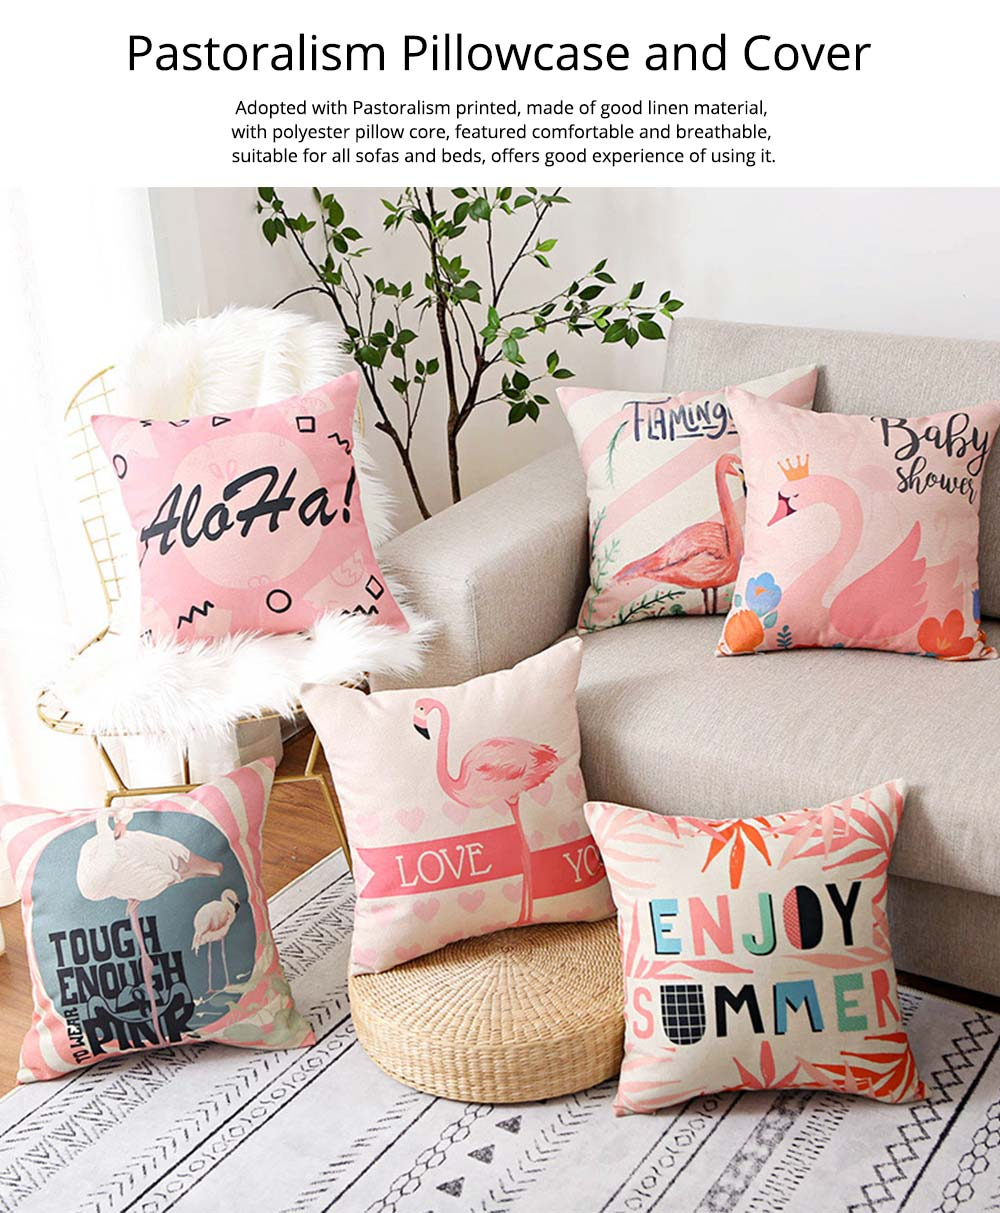 Floral Print Pillowcase with Core Artistic Pastoralism, Light Color Simple Style Linen Cushion Cover 0